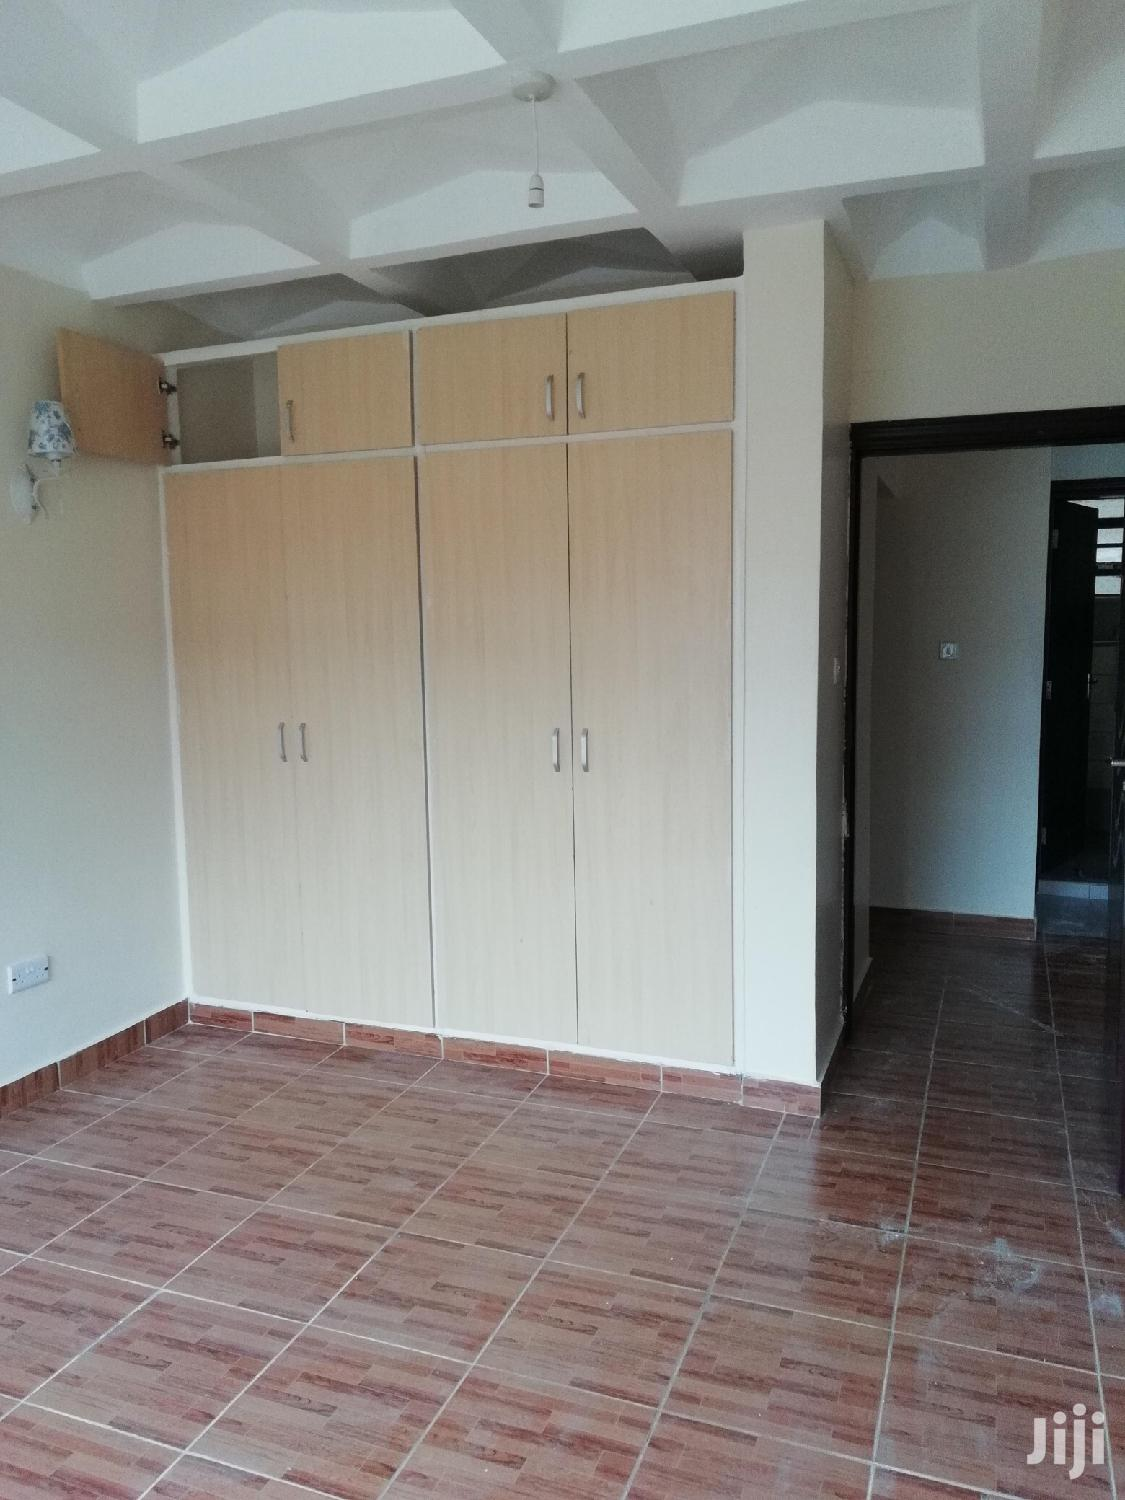 Property World;2brs Apartment With Borehoe And Very Secure | Houses & Apartments For Rent for sale in Lavington, Nairobi, Kenya